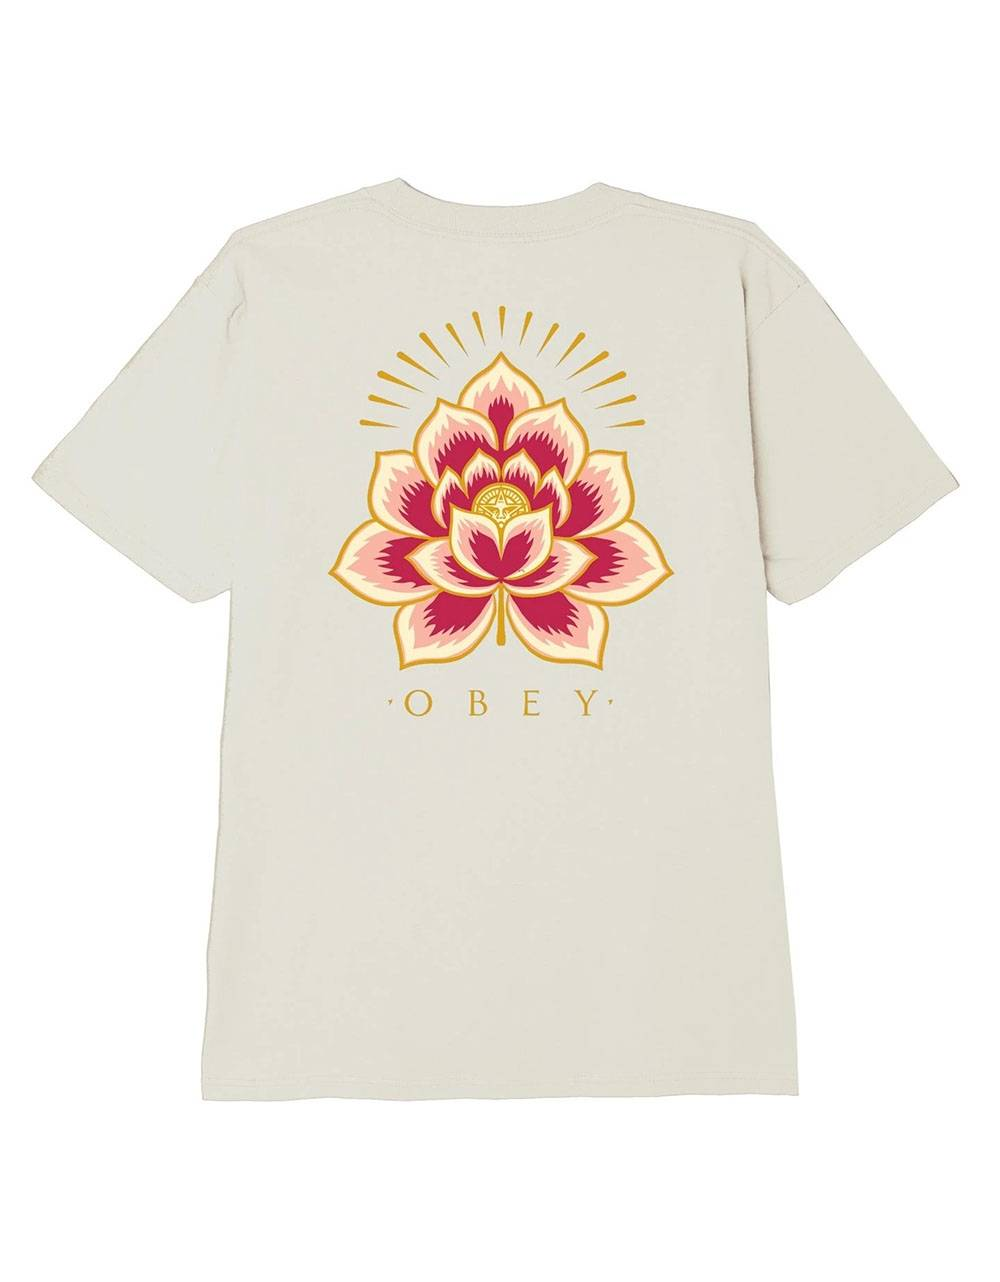 Obey Woman Radiant lotus classic tee - cream obey T-shirt 36,89€